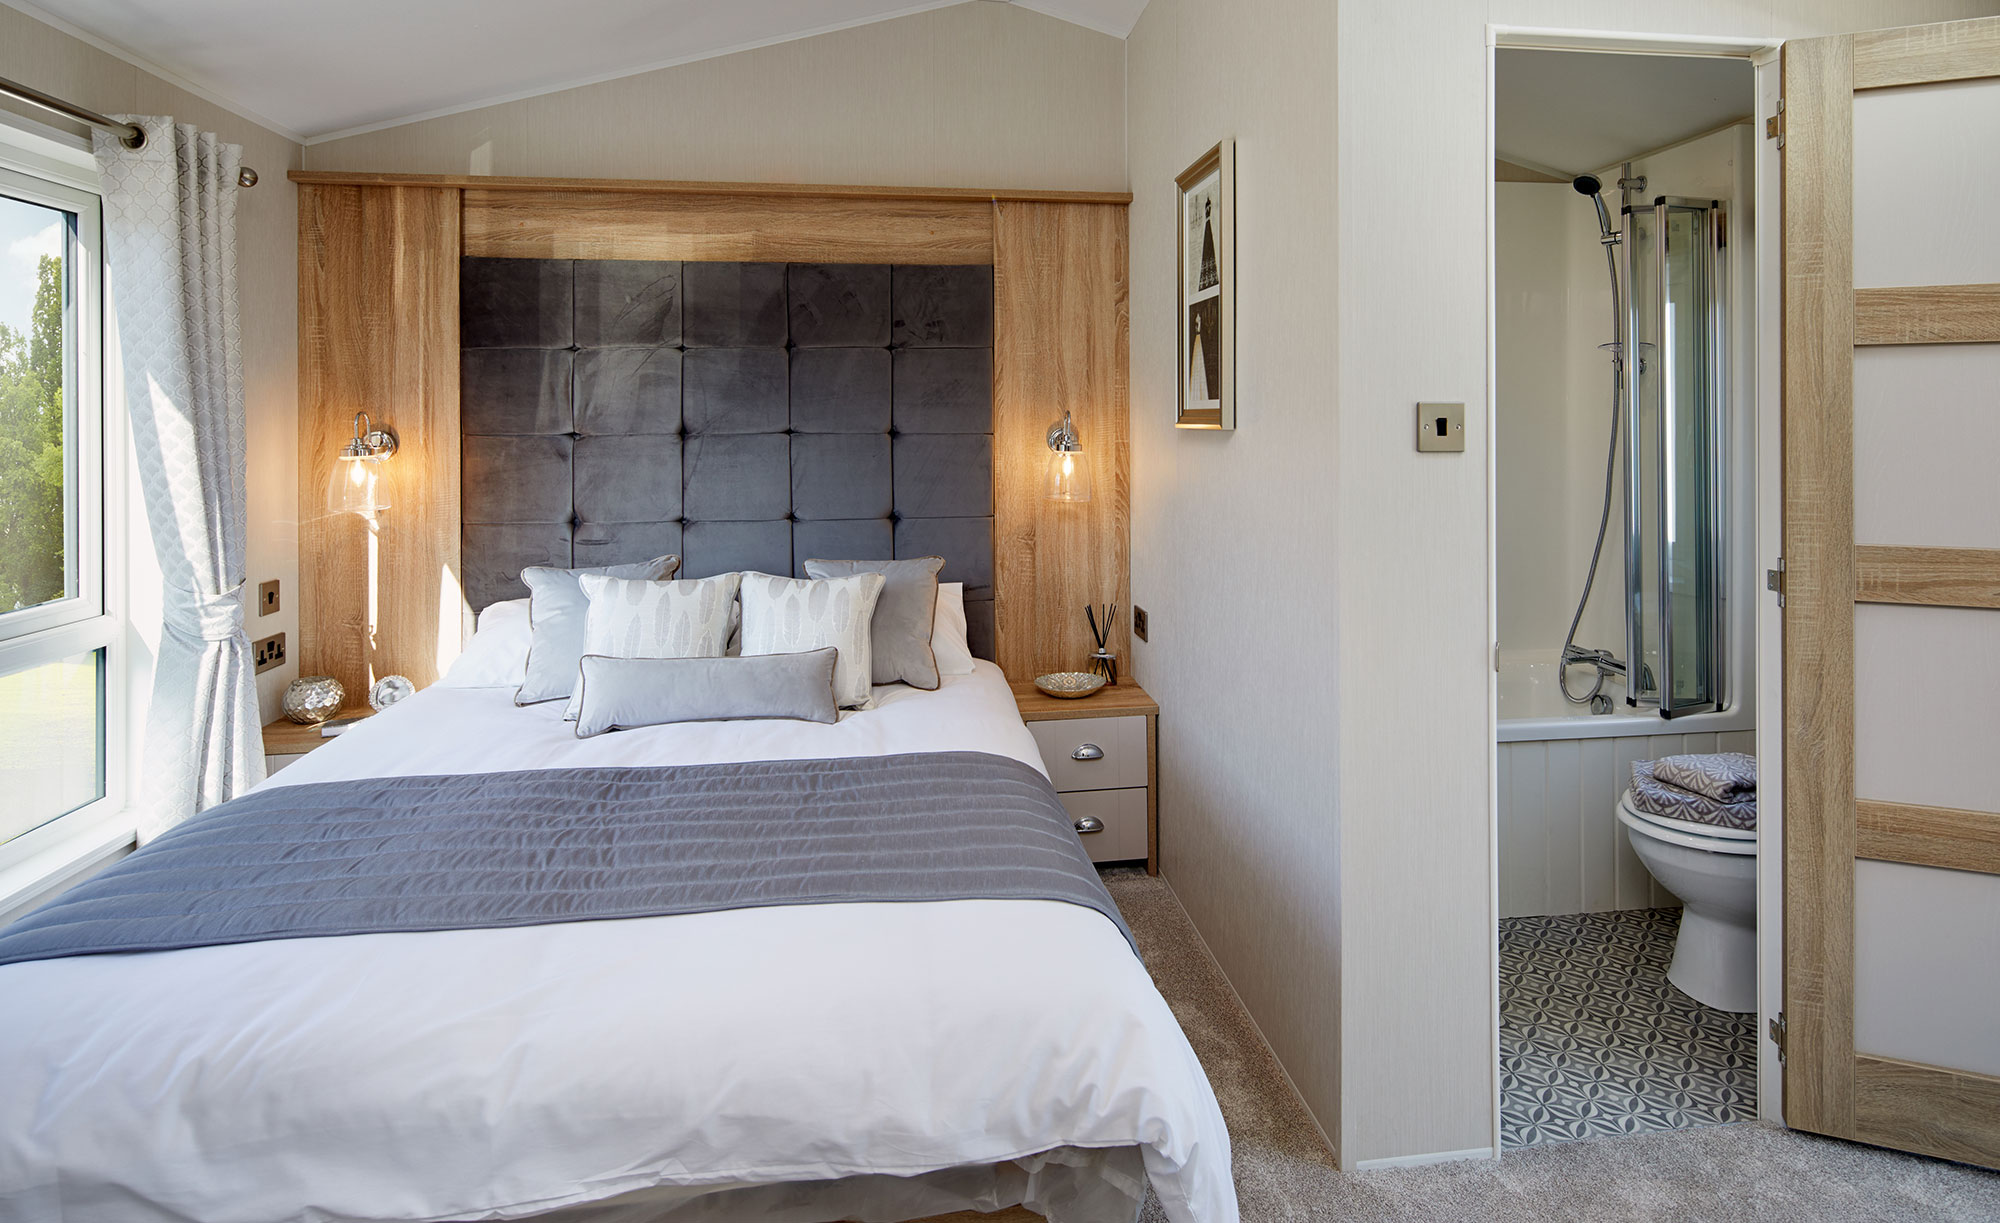 Interior shot of the bedroom in the Willerby Vogue Classique